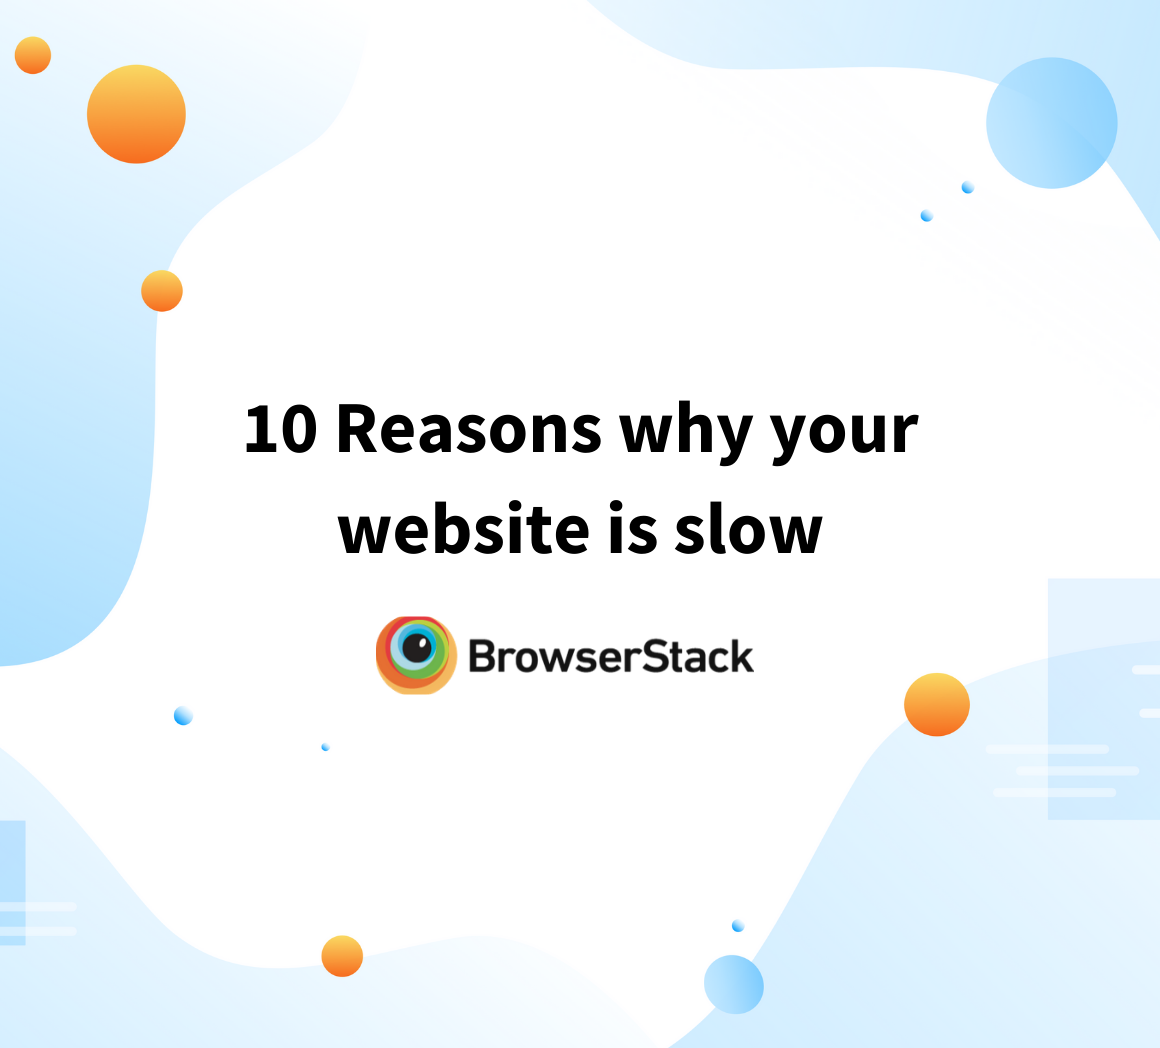 Reasons for your slow website